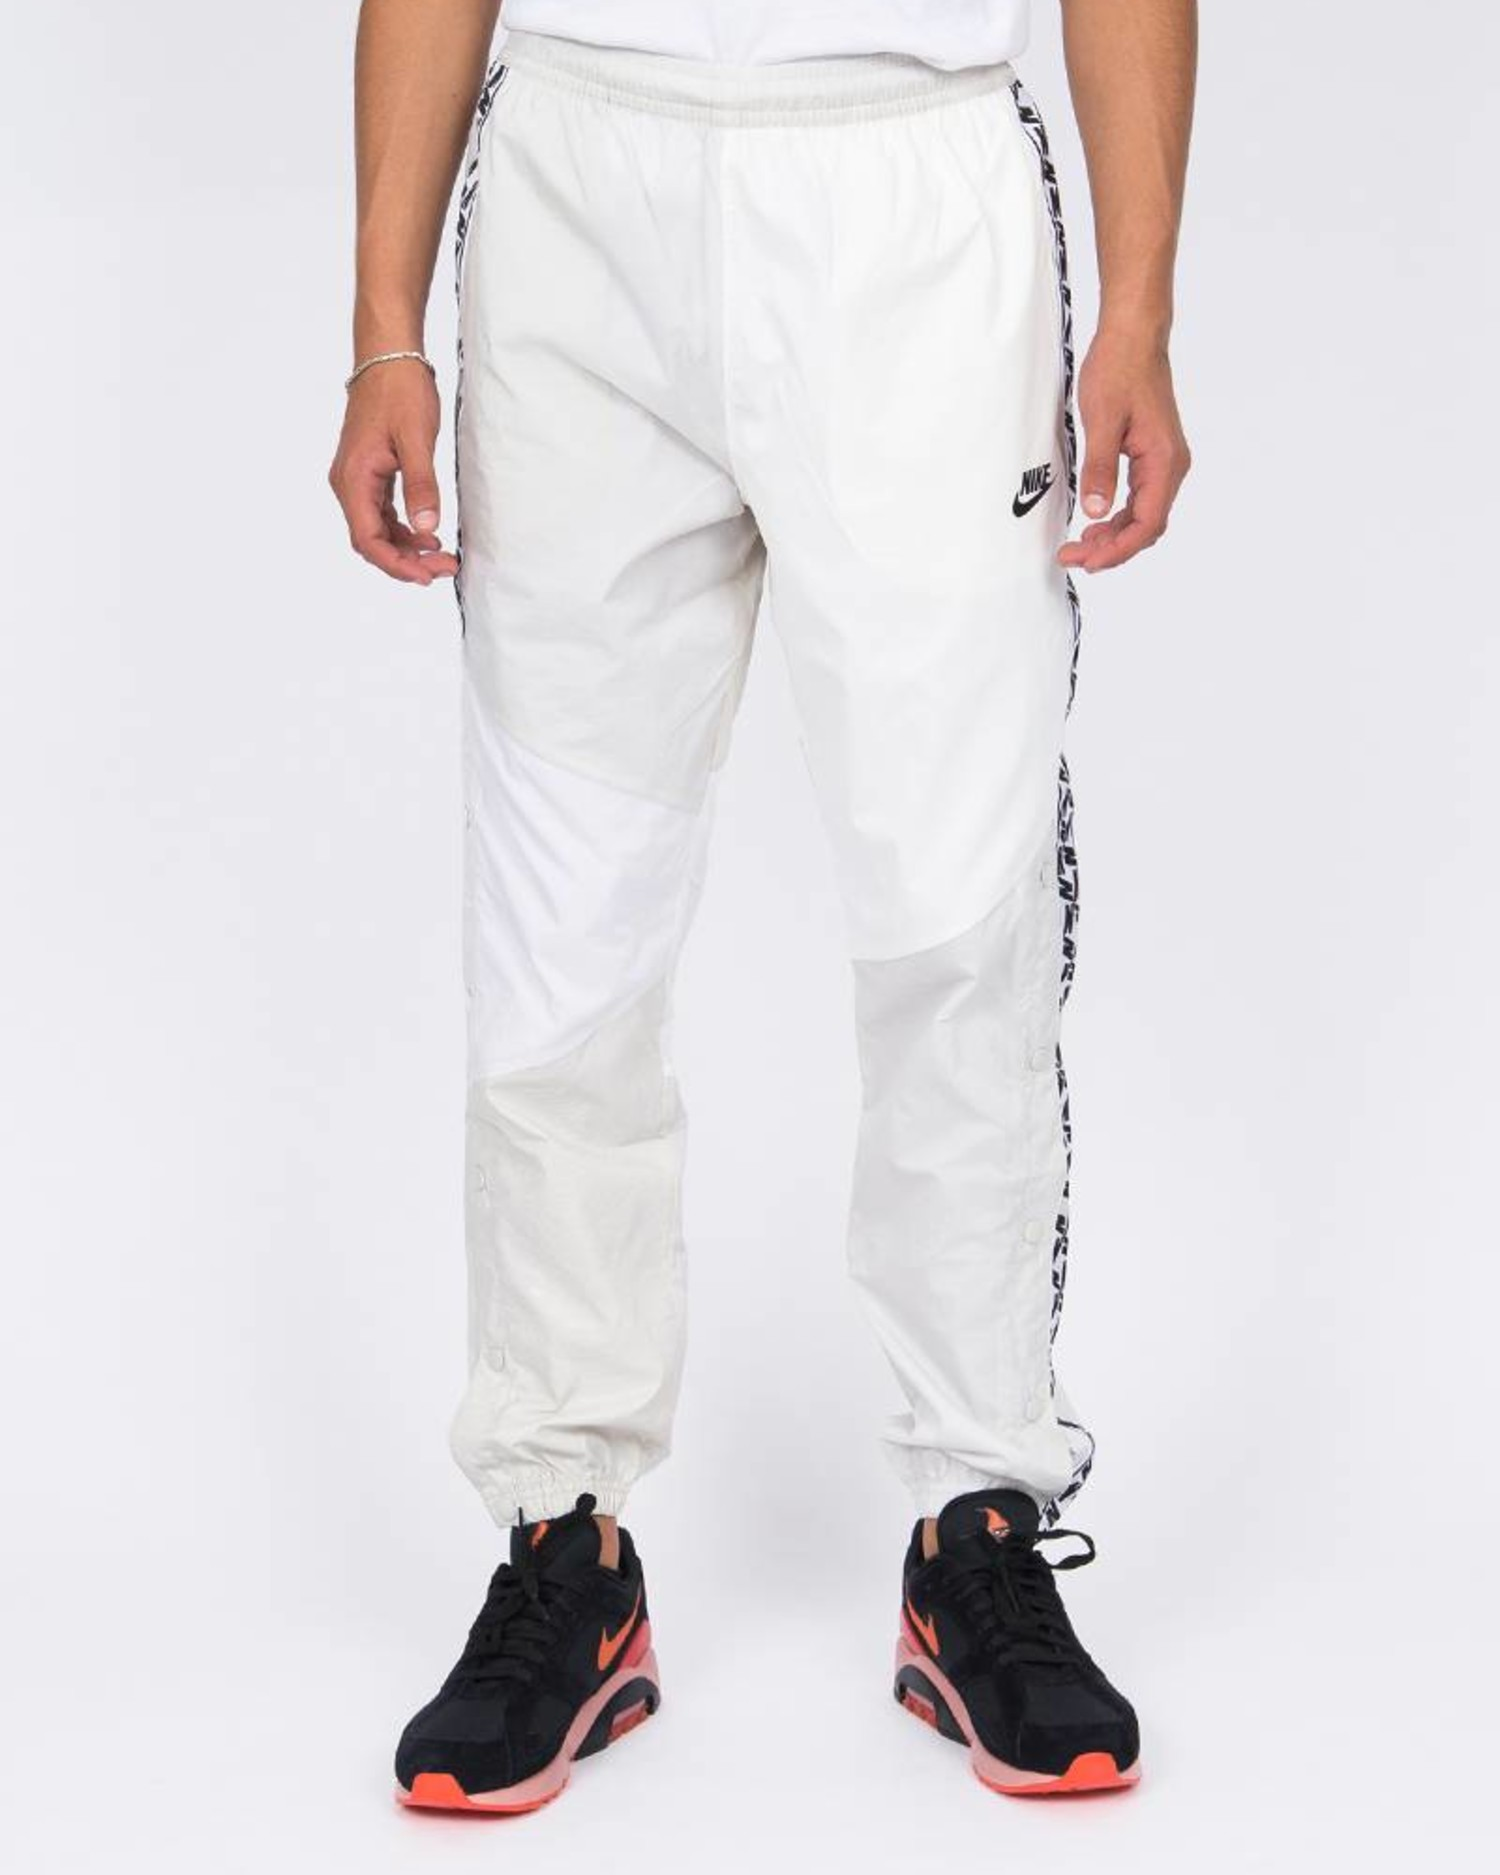 Nike Taped Woven Pant Sail/White/Light Bone/Black